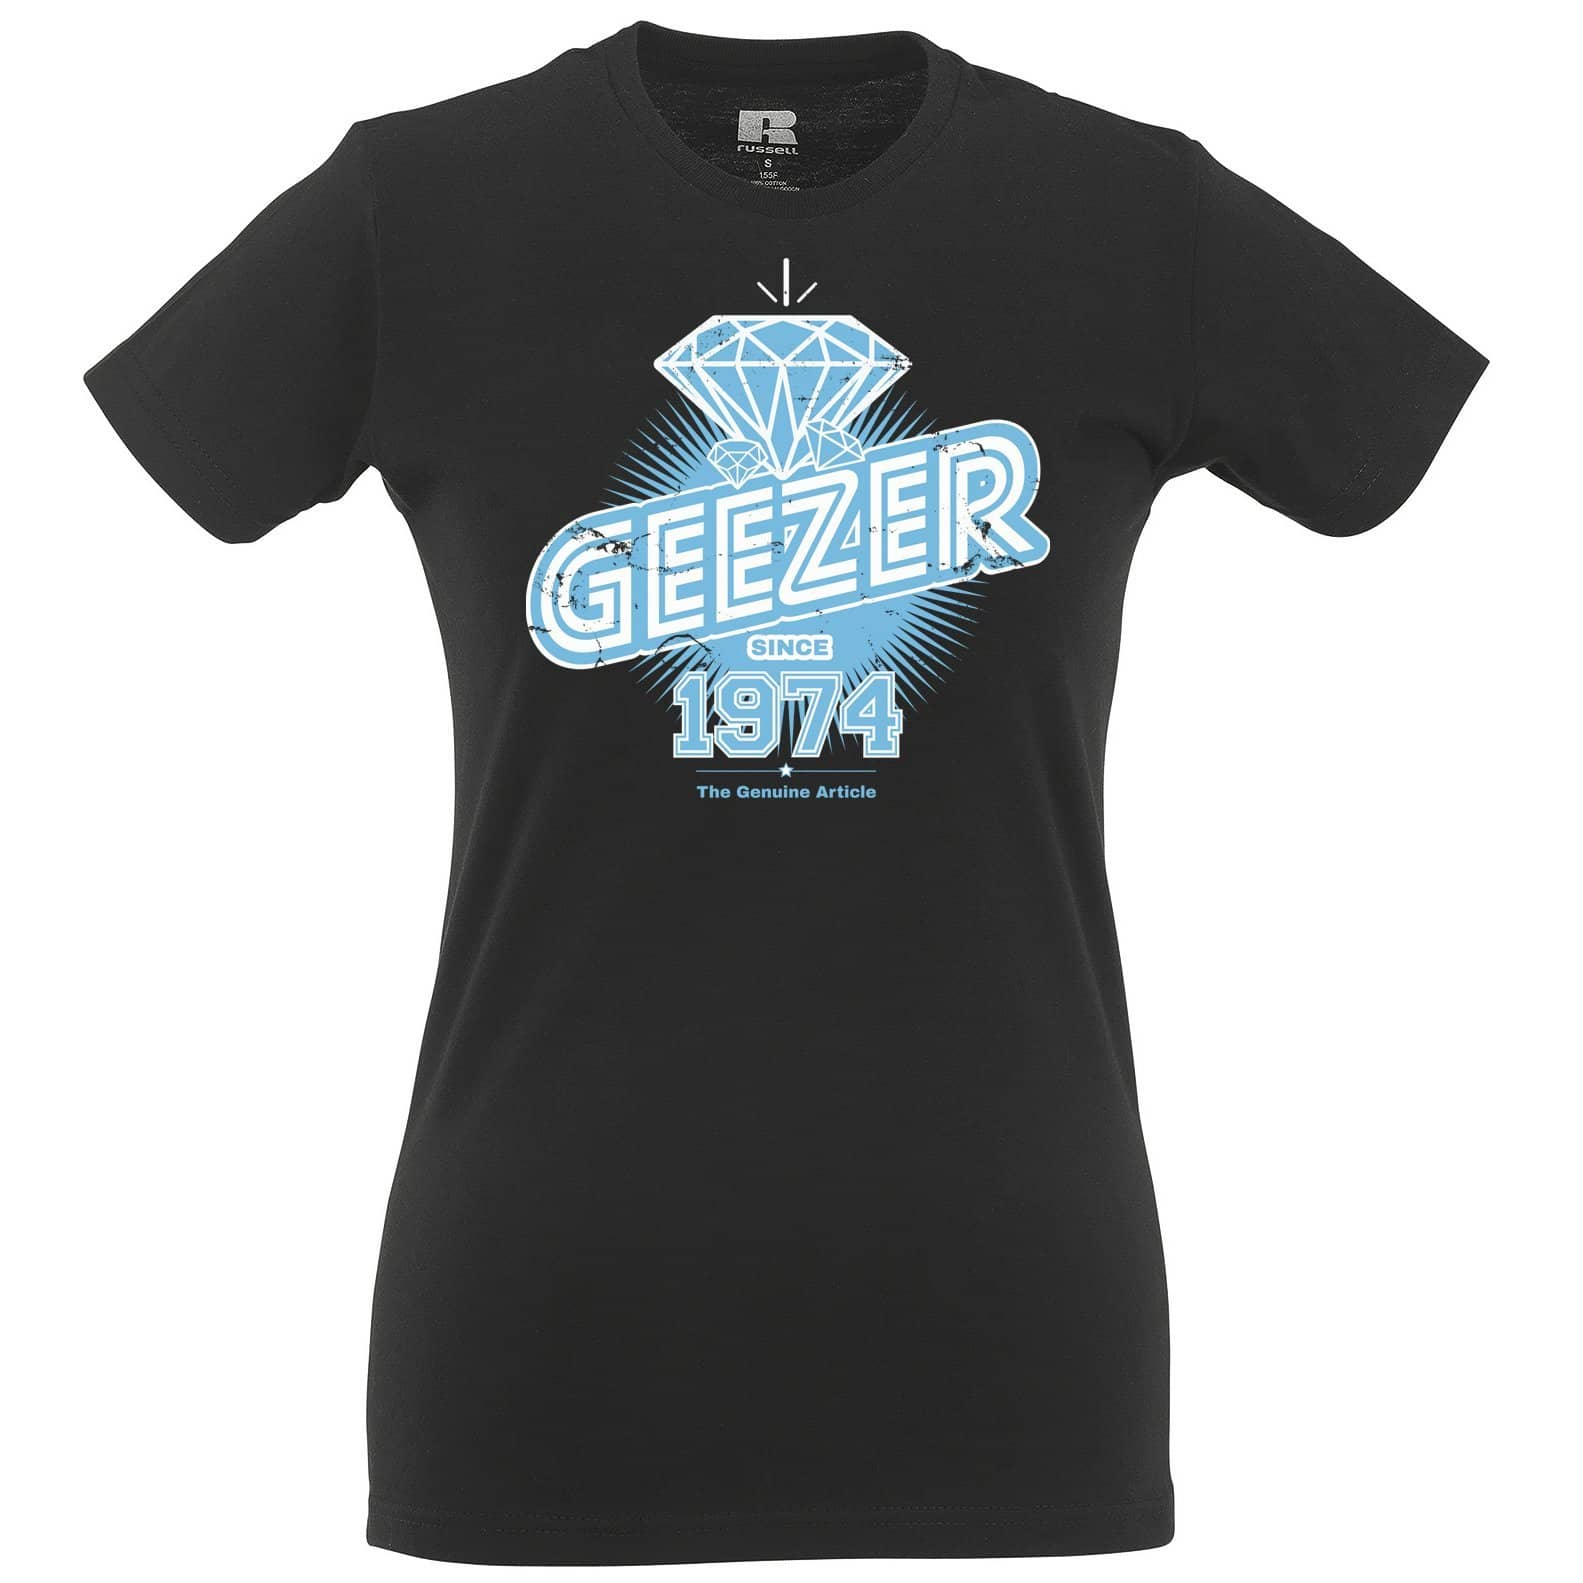 44th Birthday Womens Tee Diamond Geezer Since 1974